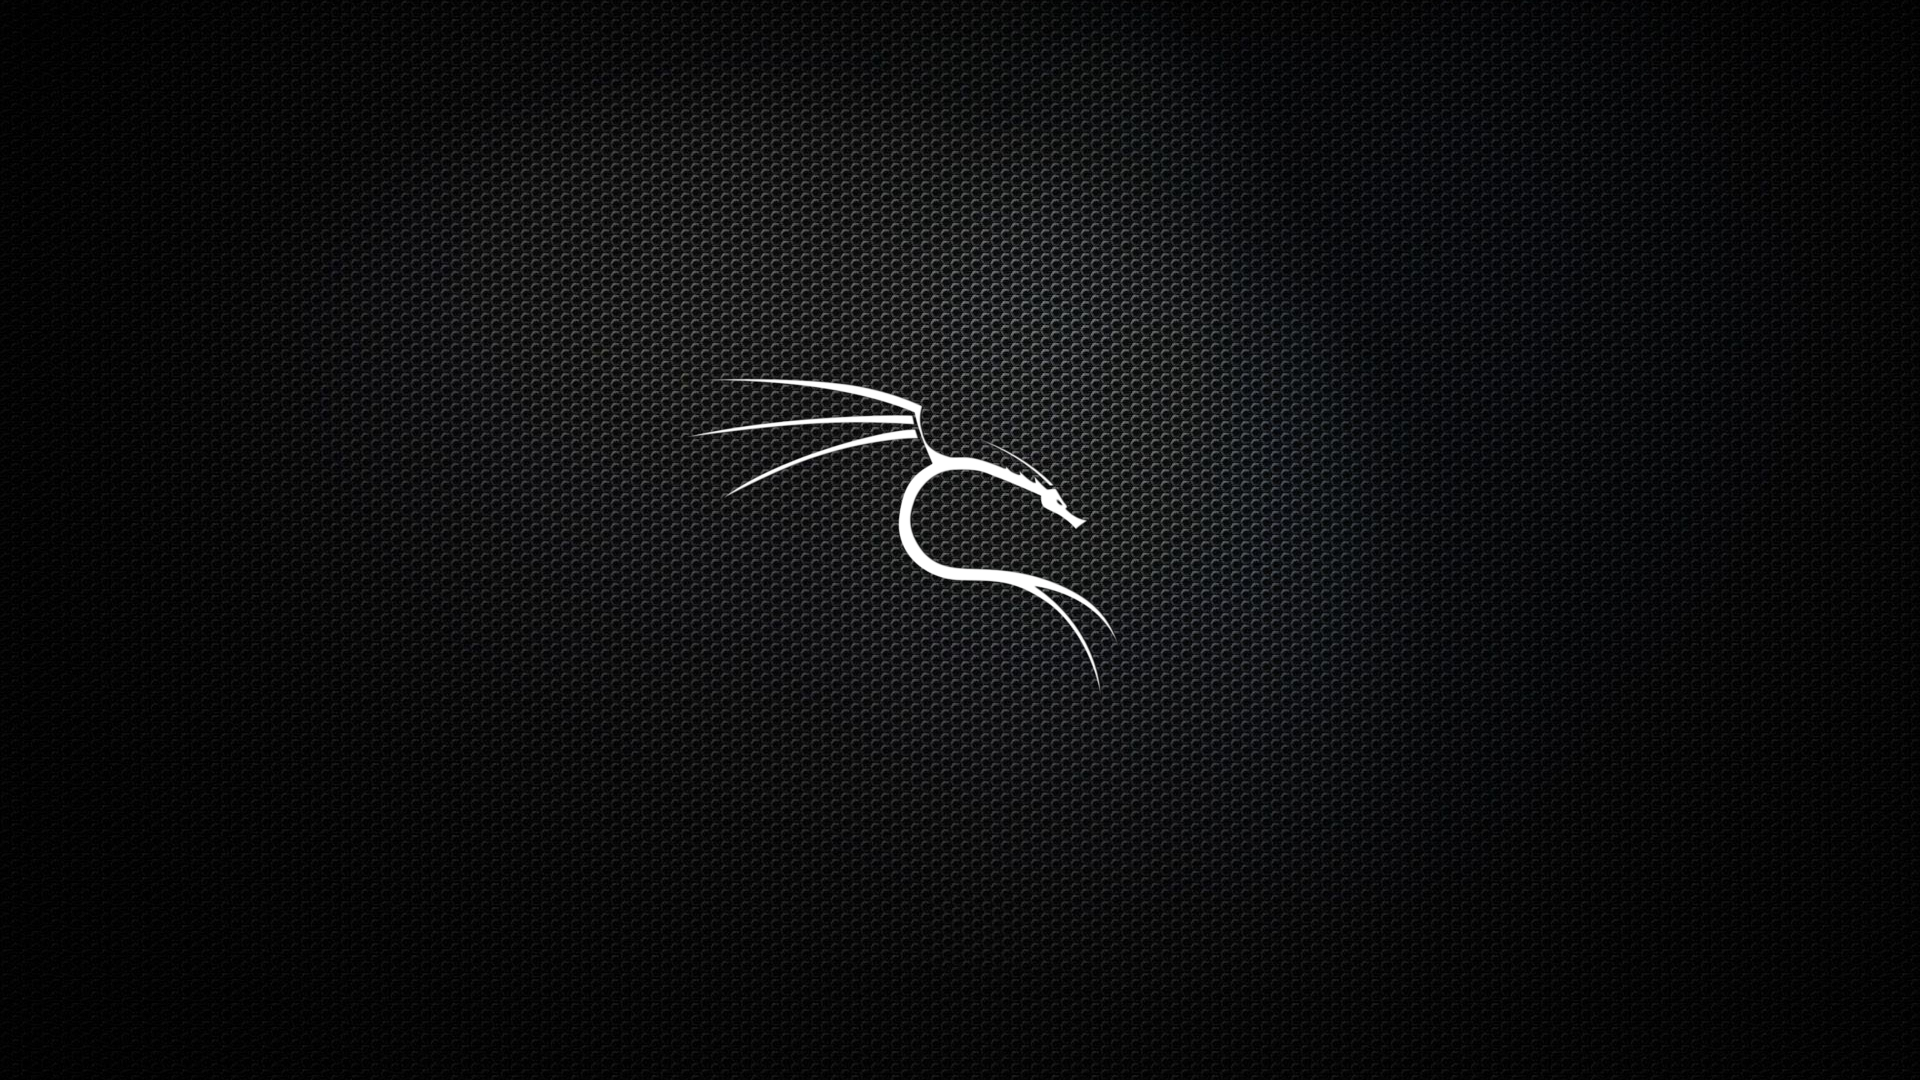 Kali Linux Wallpapers Top Free Kali Linux Backgrounds